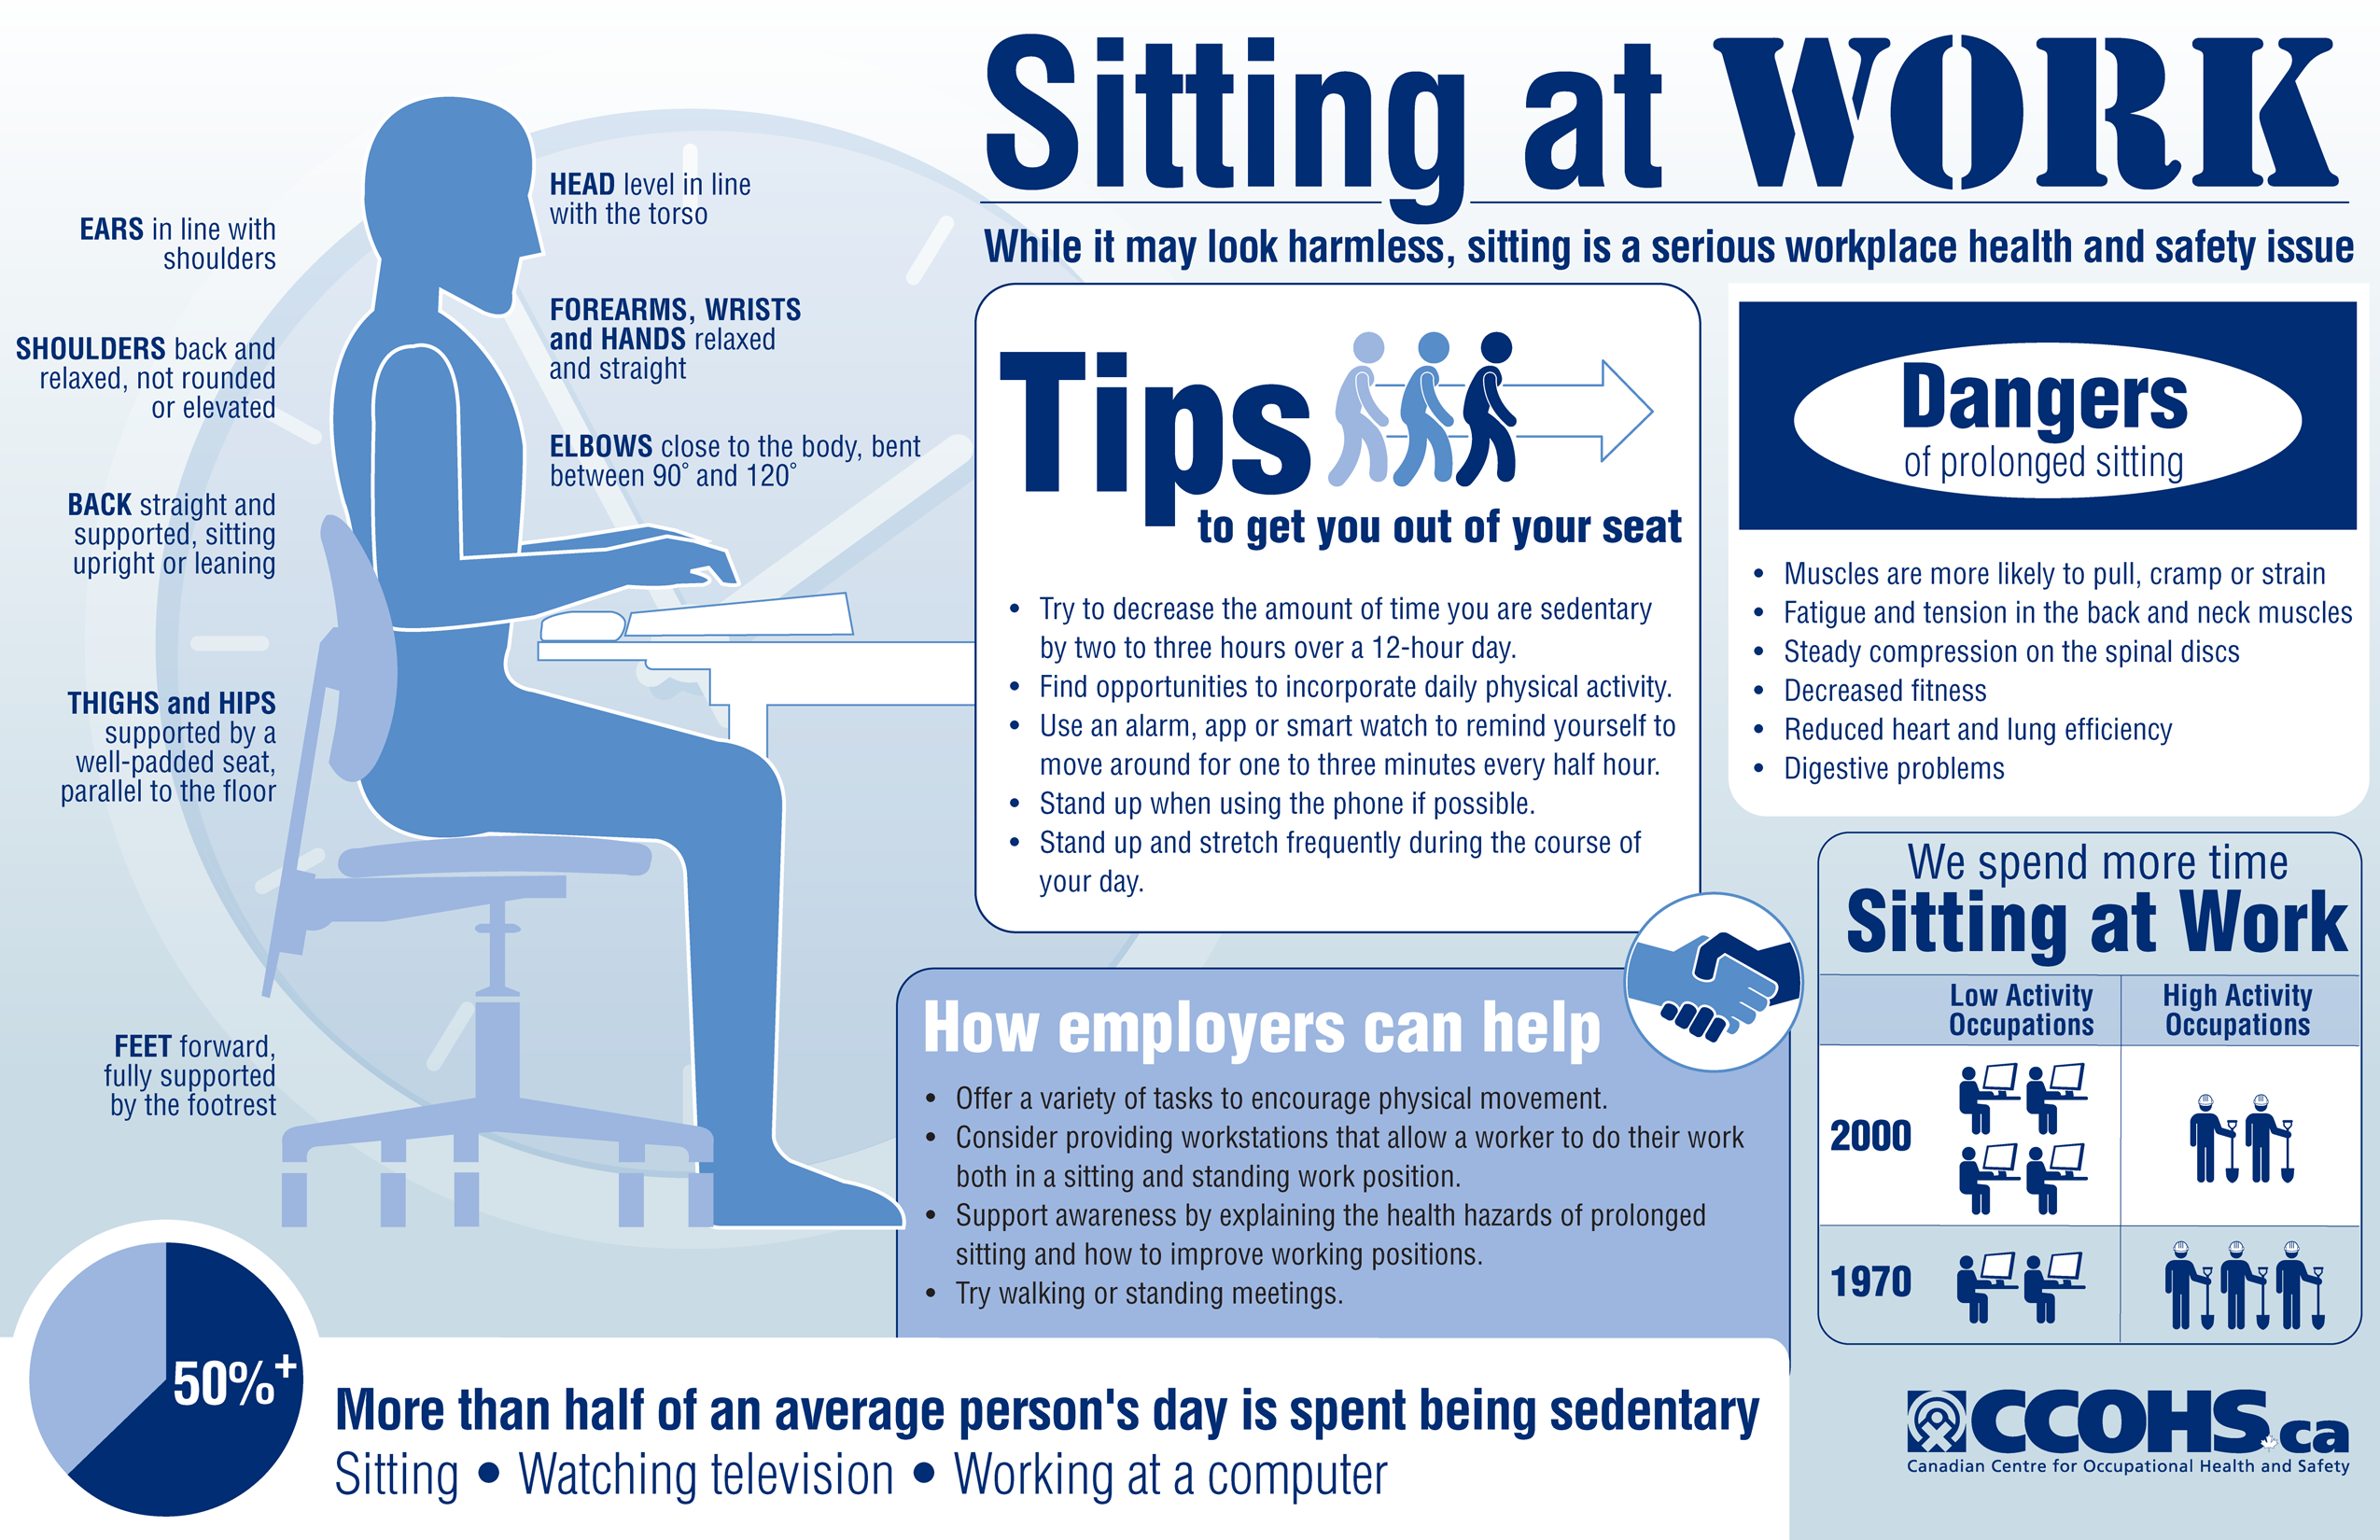 Canadians are spending more time sitting at work in low